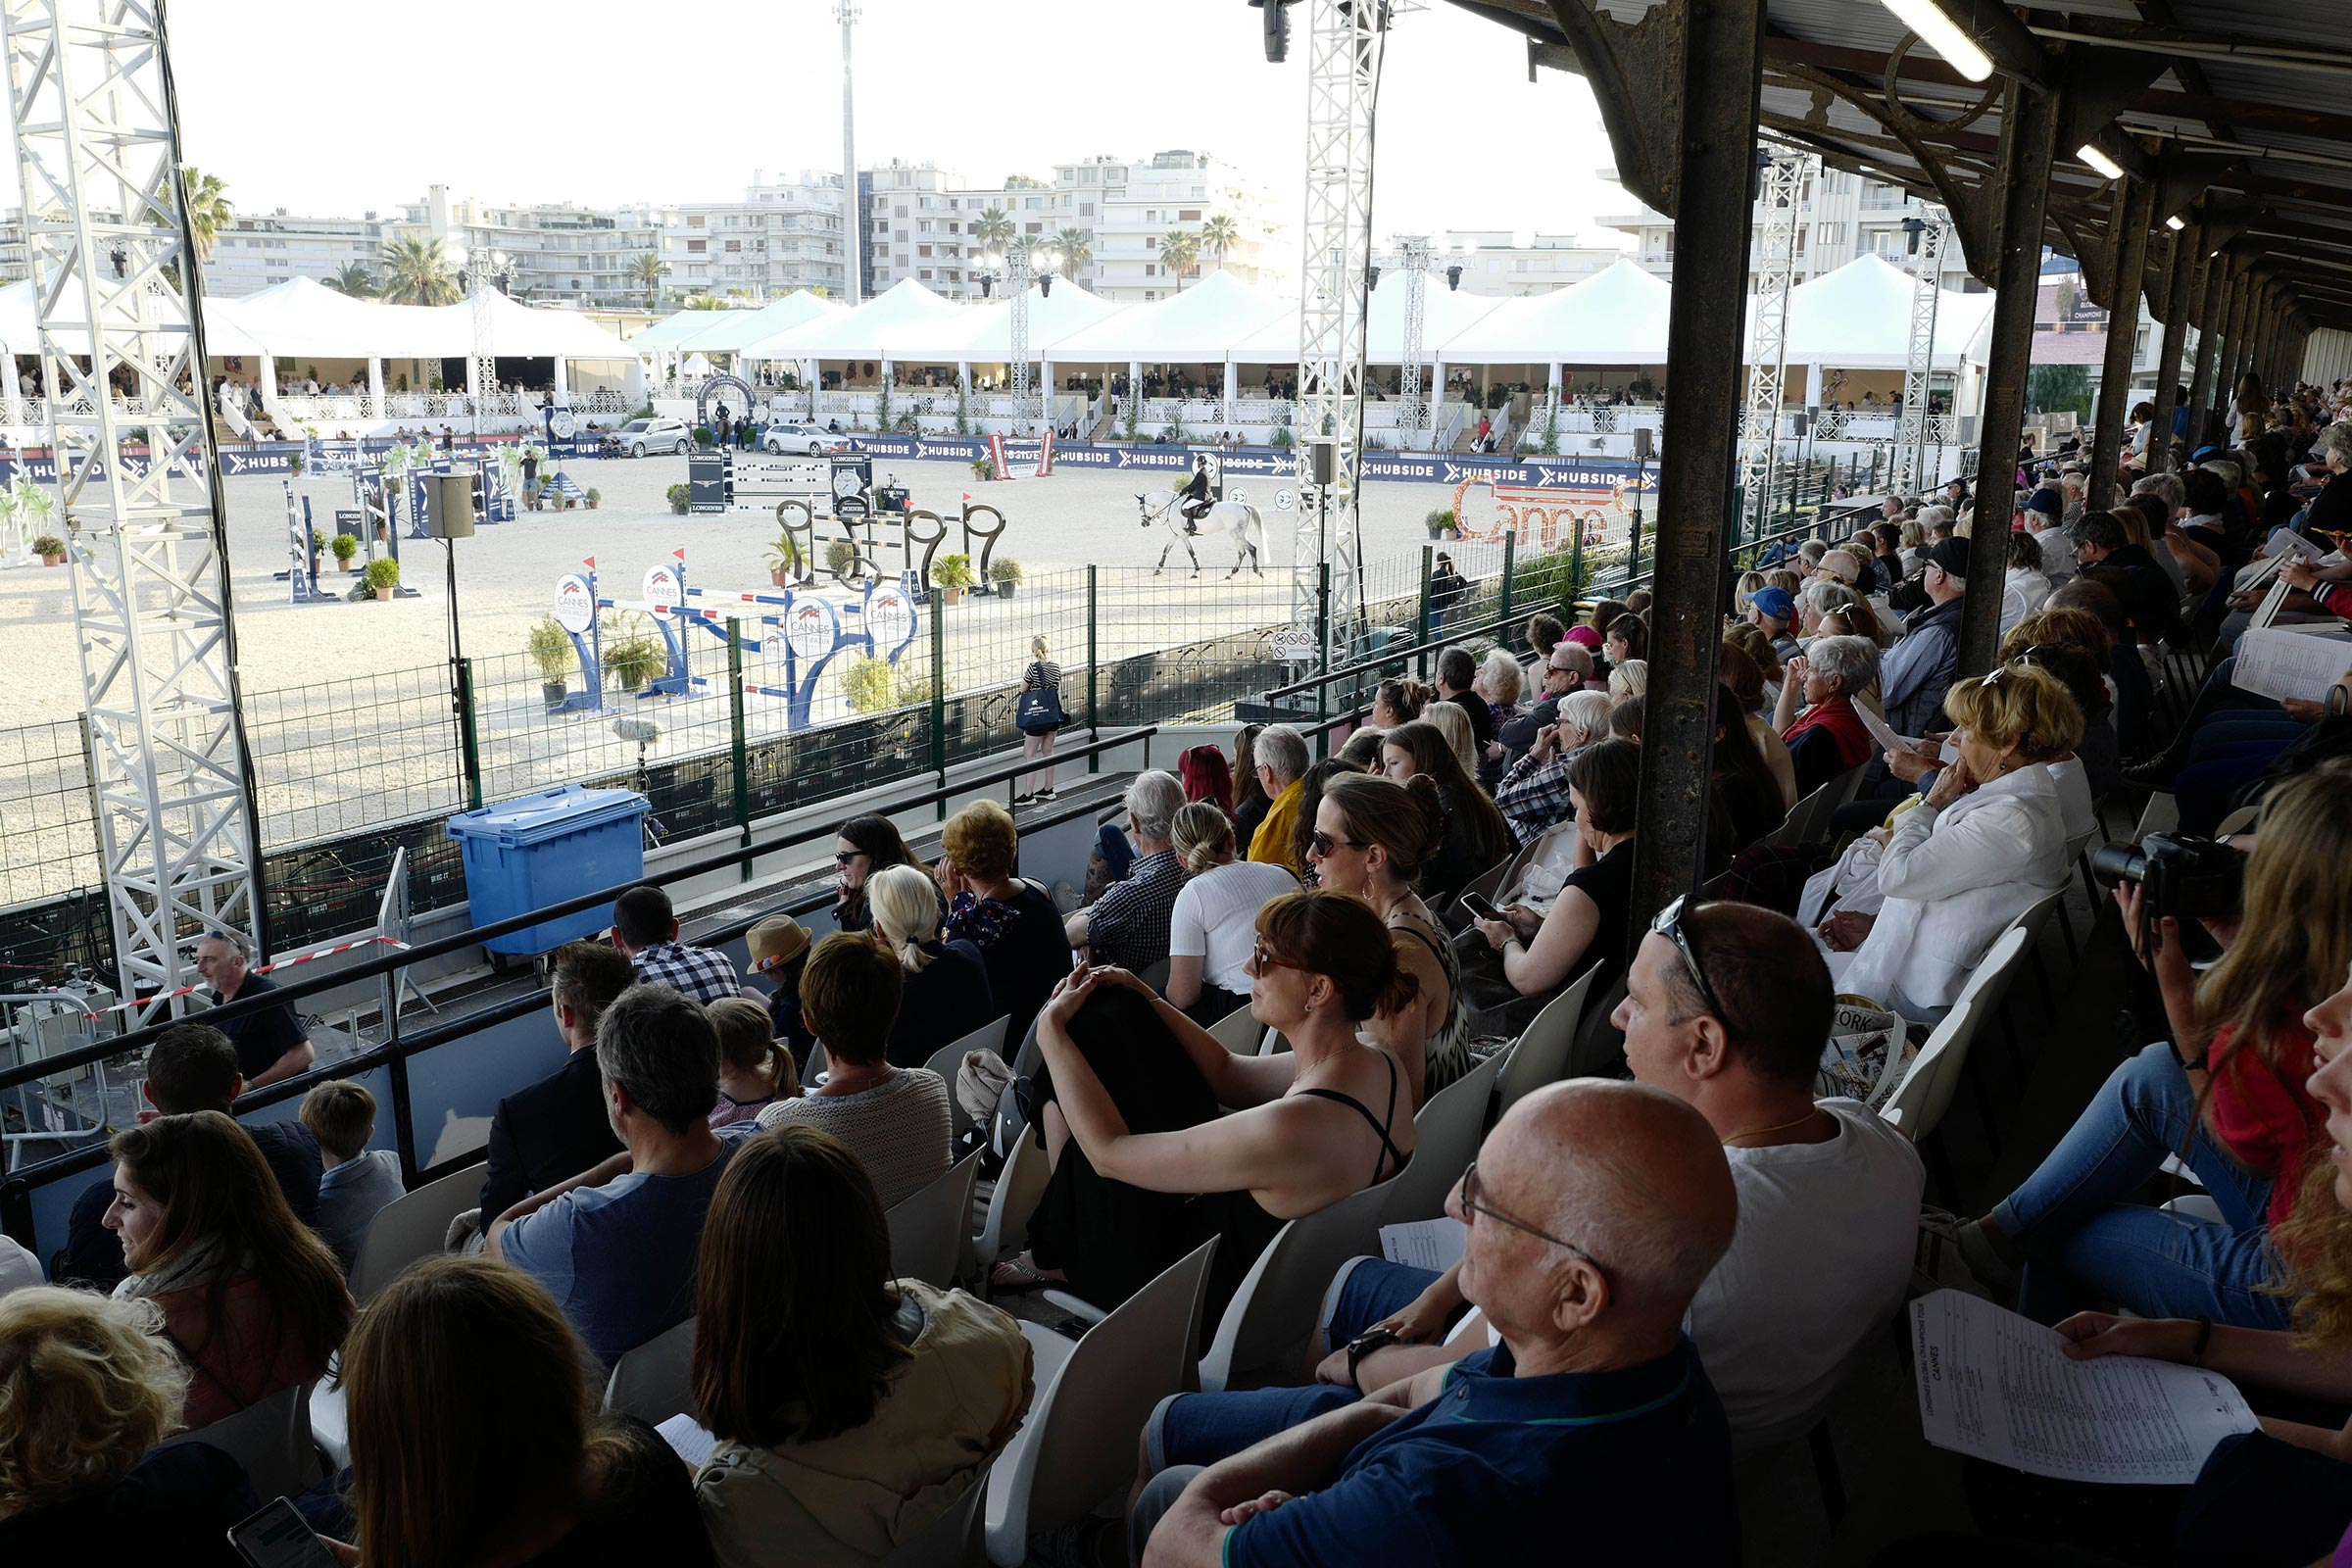 Spectators enjoy the show ph.Stefano Grasso/LGCT CANNES 2019 DOWNLOAD